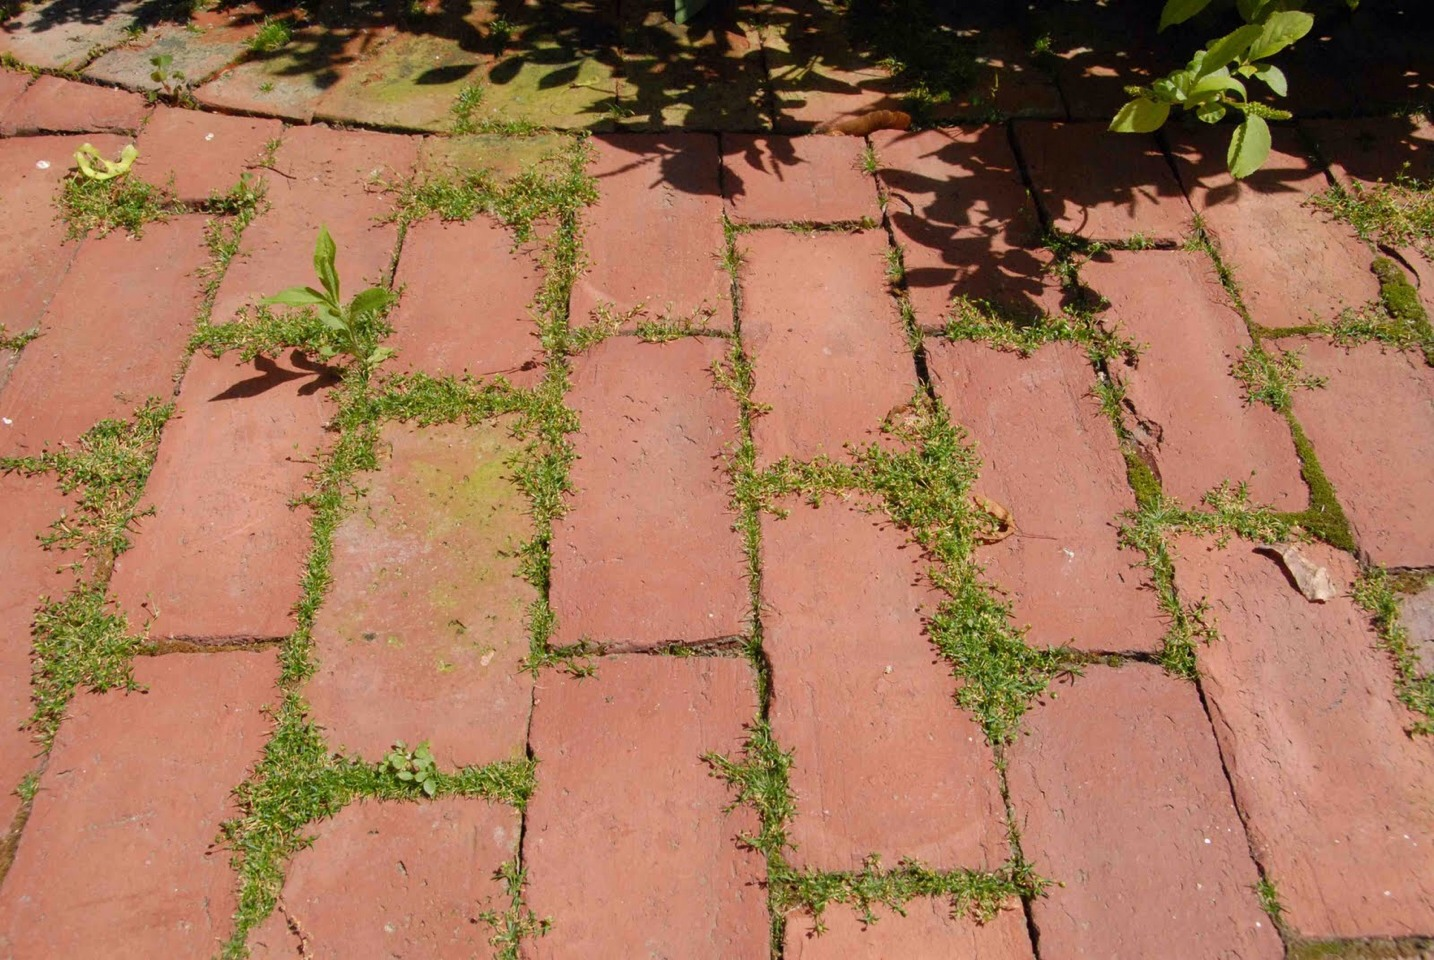 Deter patio weeds. If weeds or grass grow between bricks or blocks in your patio, sidewalk, or driveway, carefully spread salt between the cracks, then sprinkle with water or wait for rain to wet it down.